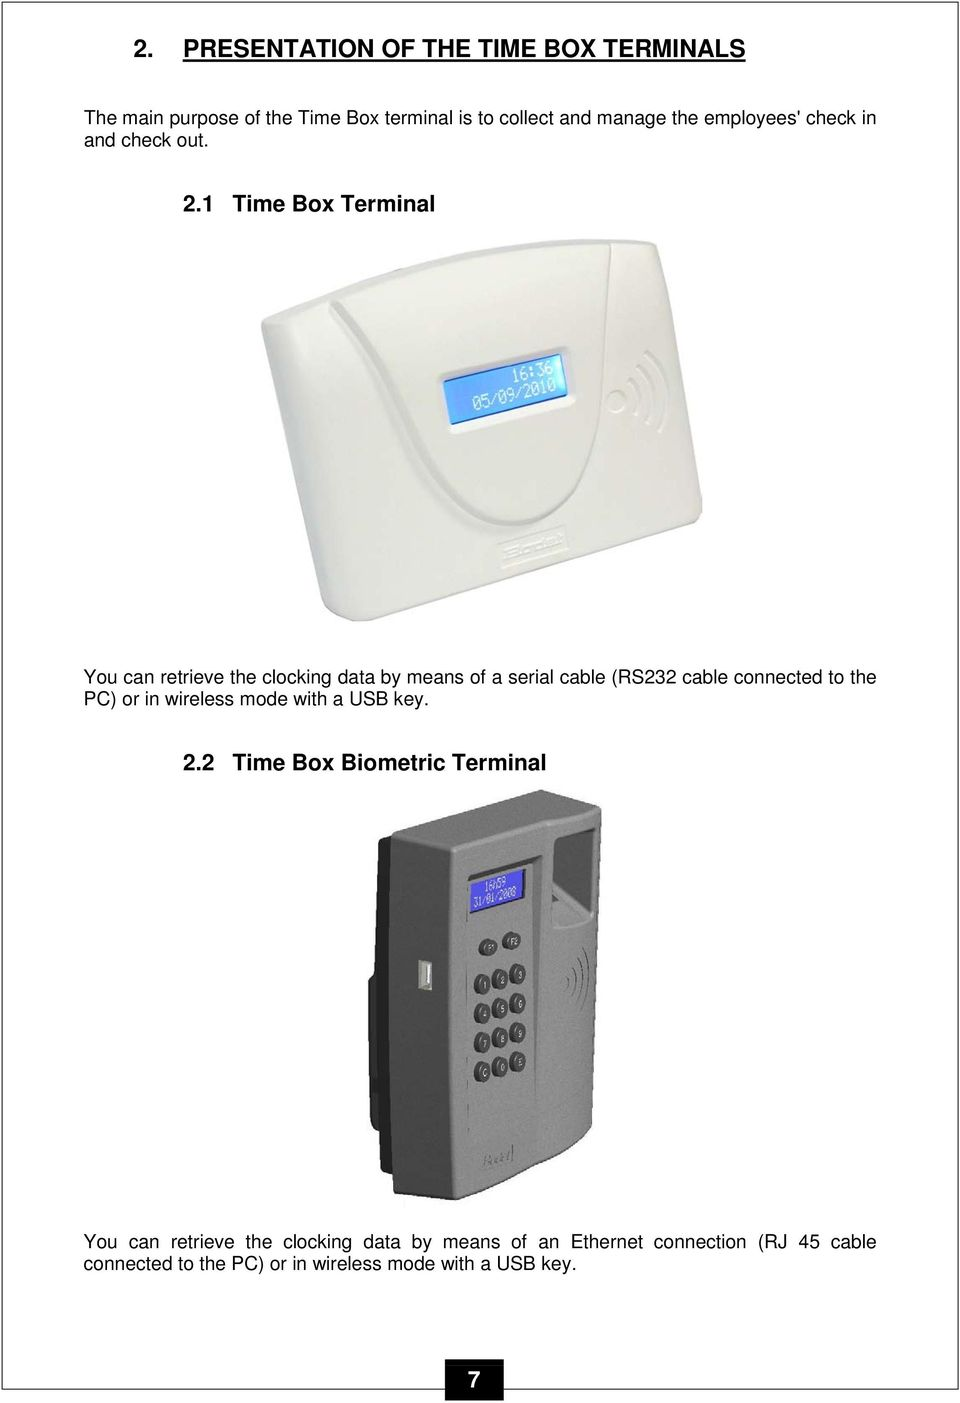 1 Time Box Terminal You can retrieve the clocking data by means of a serial cable (RS232 cable connected to the PC) or